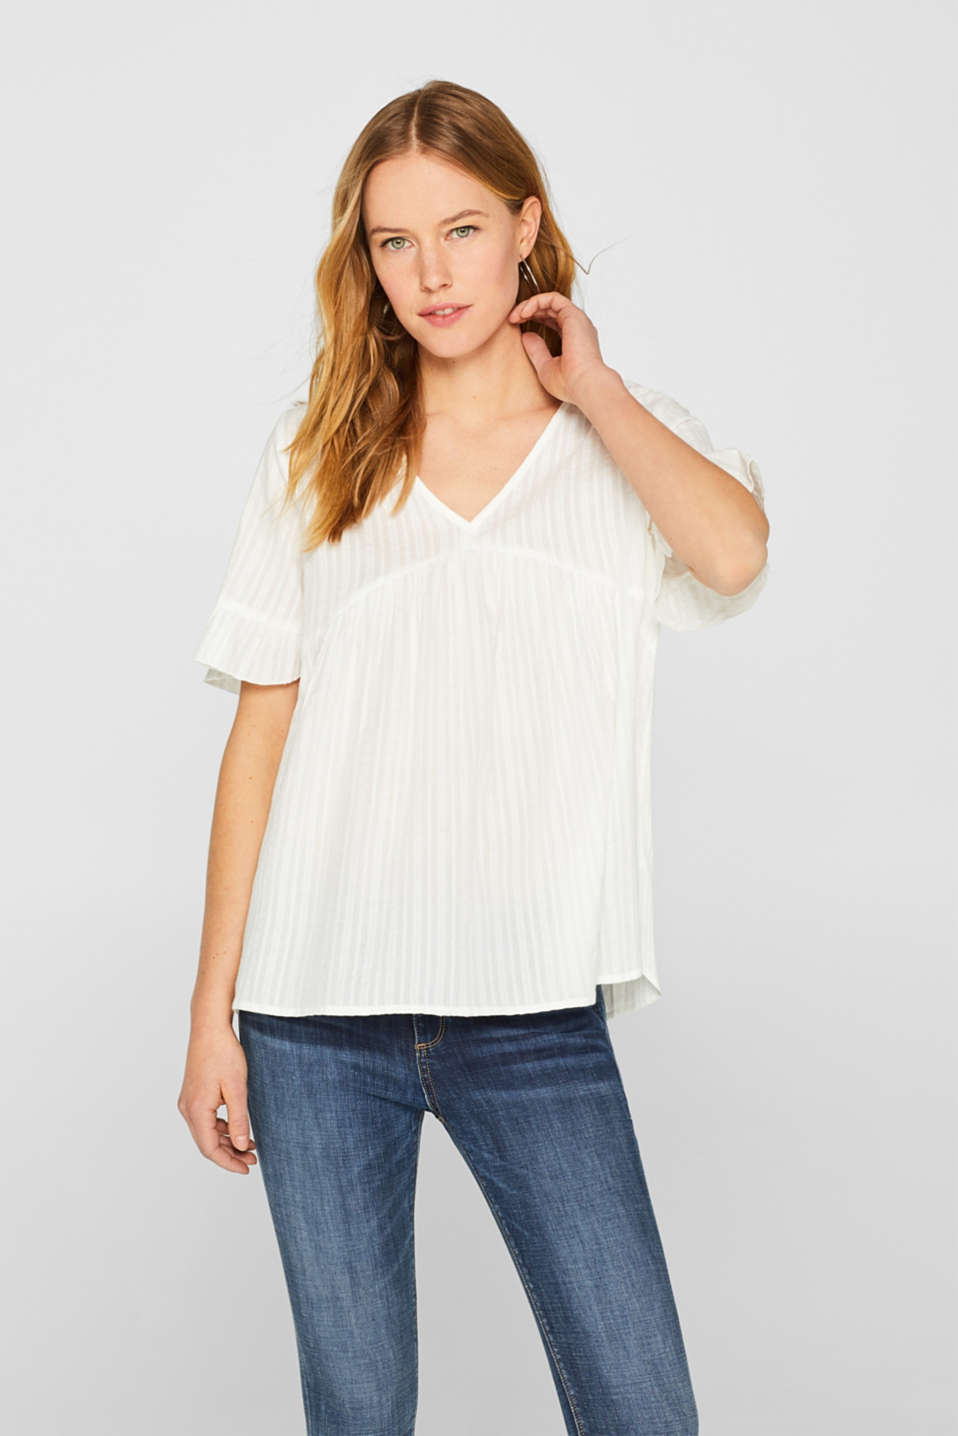 Esprit - Tunic blouse with woven texture, 100% cotton